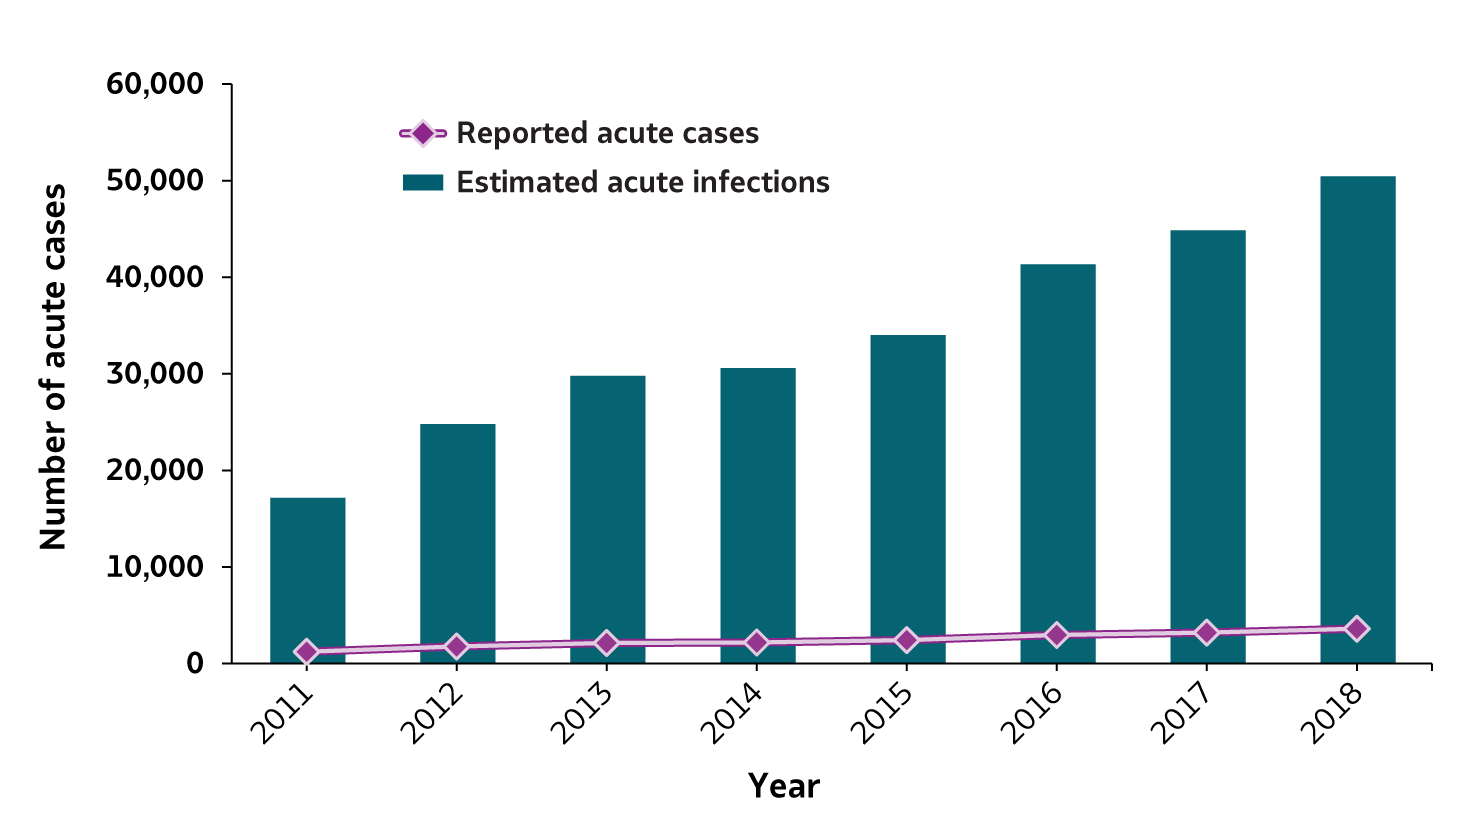 Figure 3.1 This figure shows the number of reported cases of acute hepatitis C and estimated acute hepatitis C infections for 2011 through 2018.  The number of reported acute hepatitis C cases and estimated acute hepatitis C infection generally increased each year during the time period. In 2018 there were 3,621 reported cases of acute hepatitis C and 50,300 estimated acute hepatitis C infections.